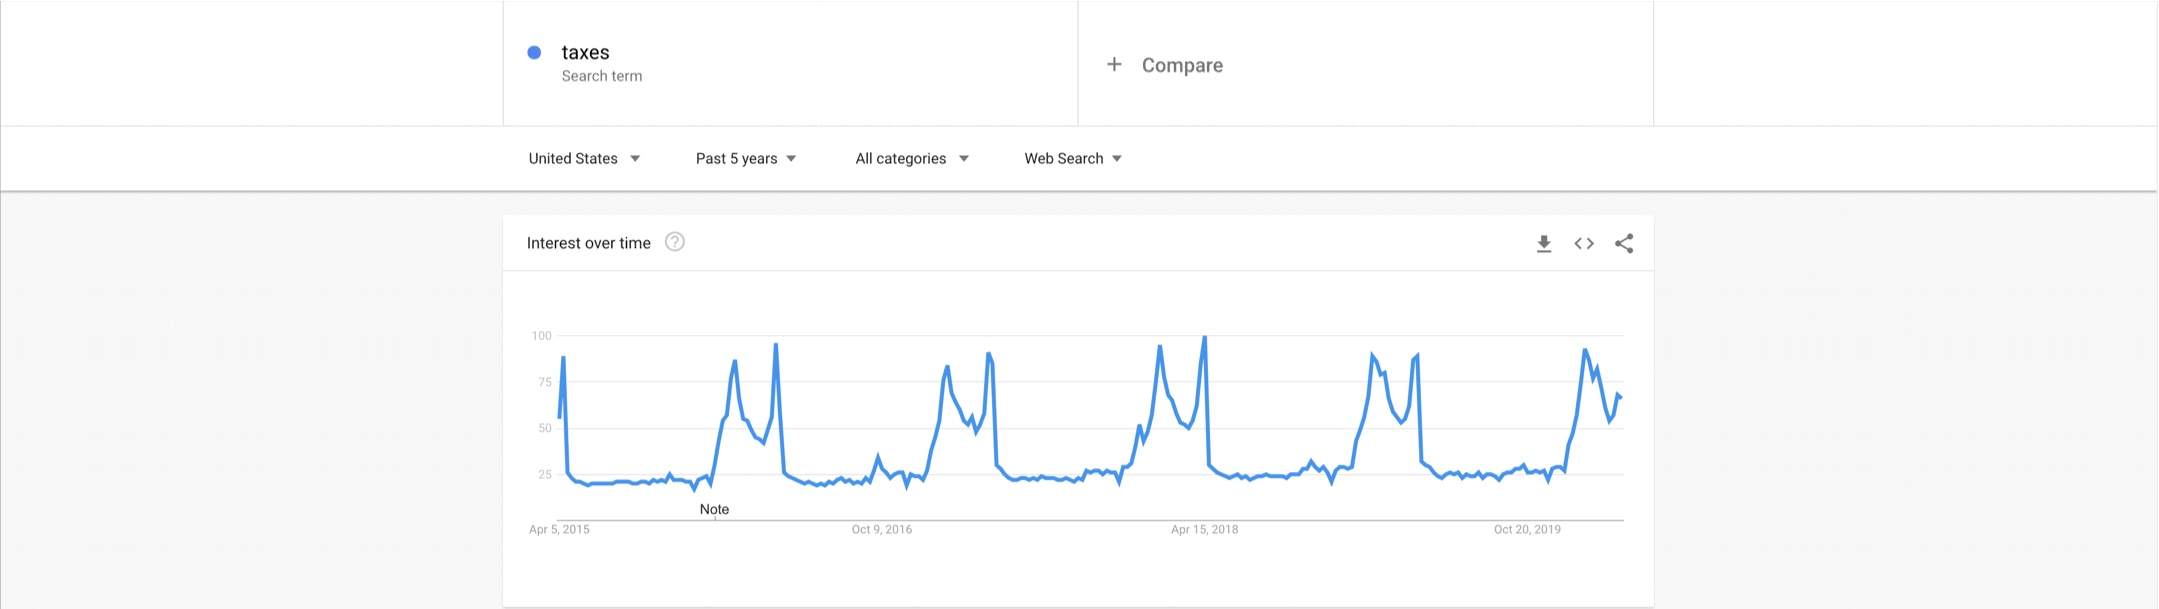 Google Trends Taxes peak every year